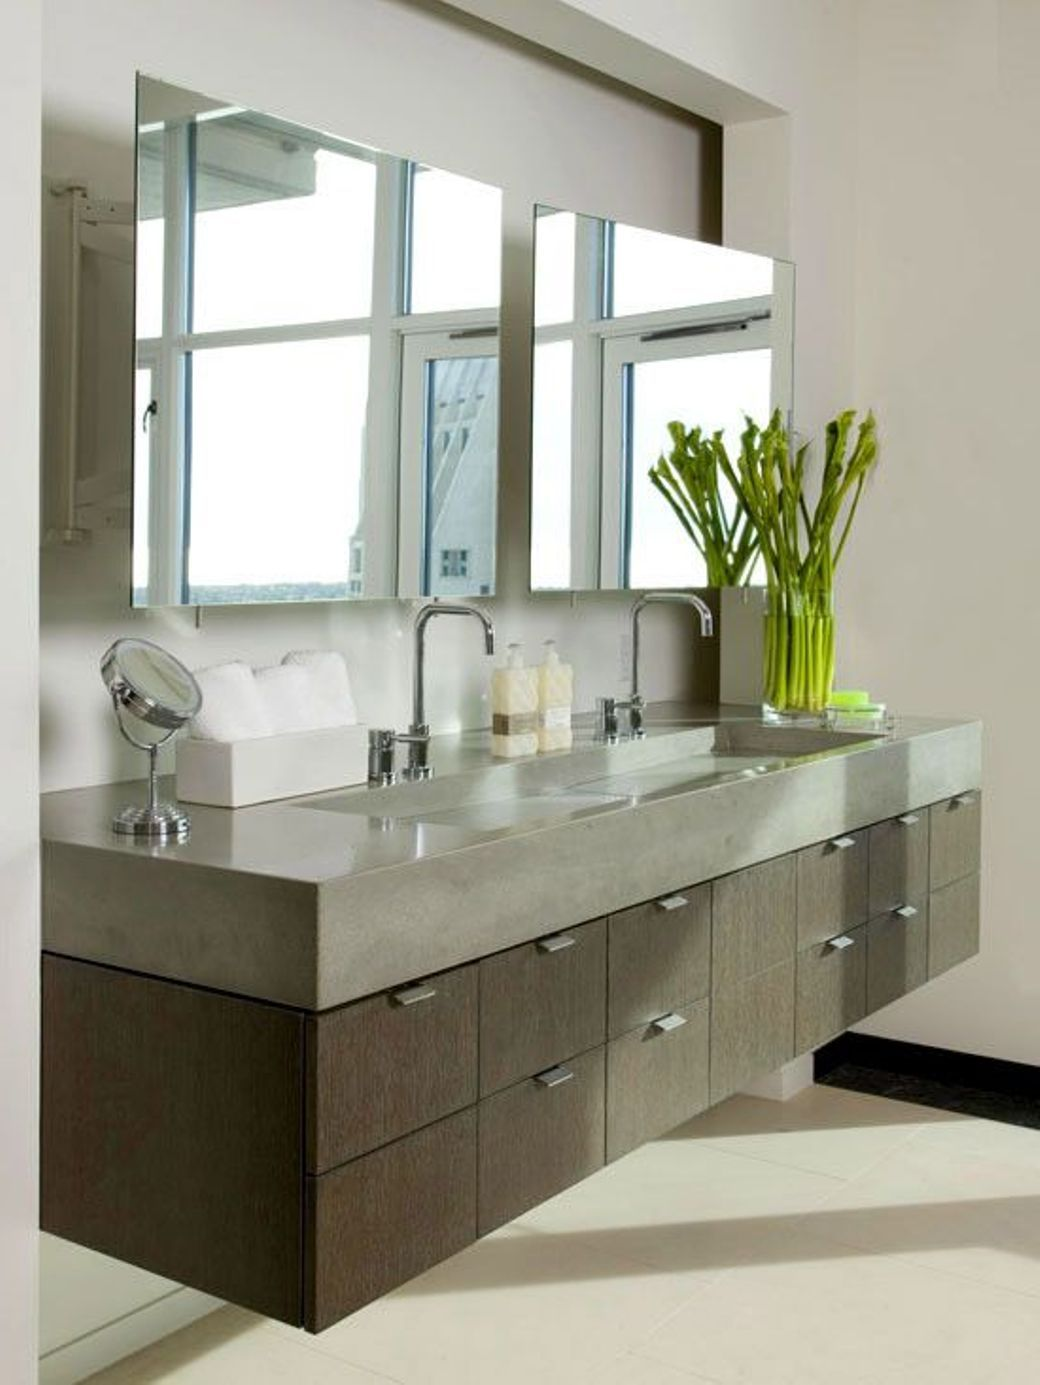 Gallery For Website Floating Modern Bathroom Vanity With Poured Concrete Countertop And Integrated Trough Sink And Double Wide Mirrors The Modern Bathroom Van